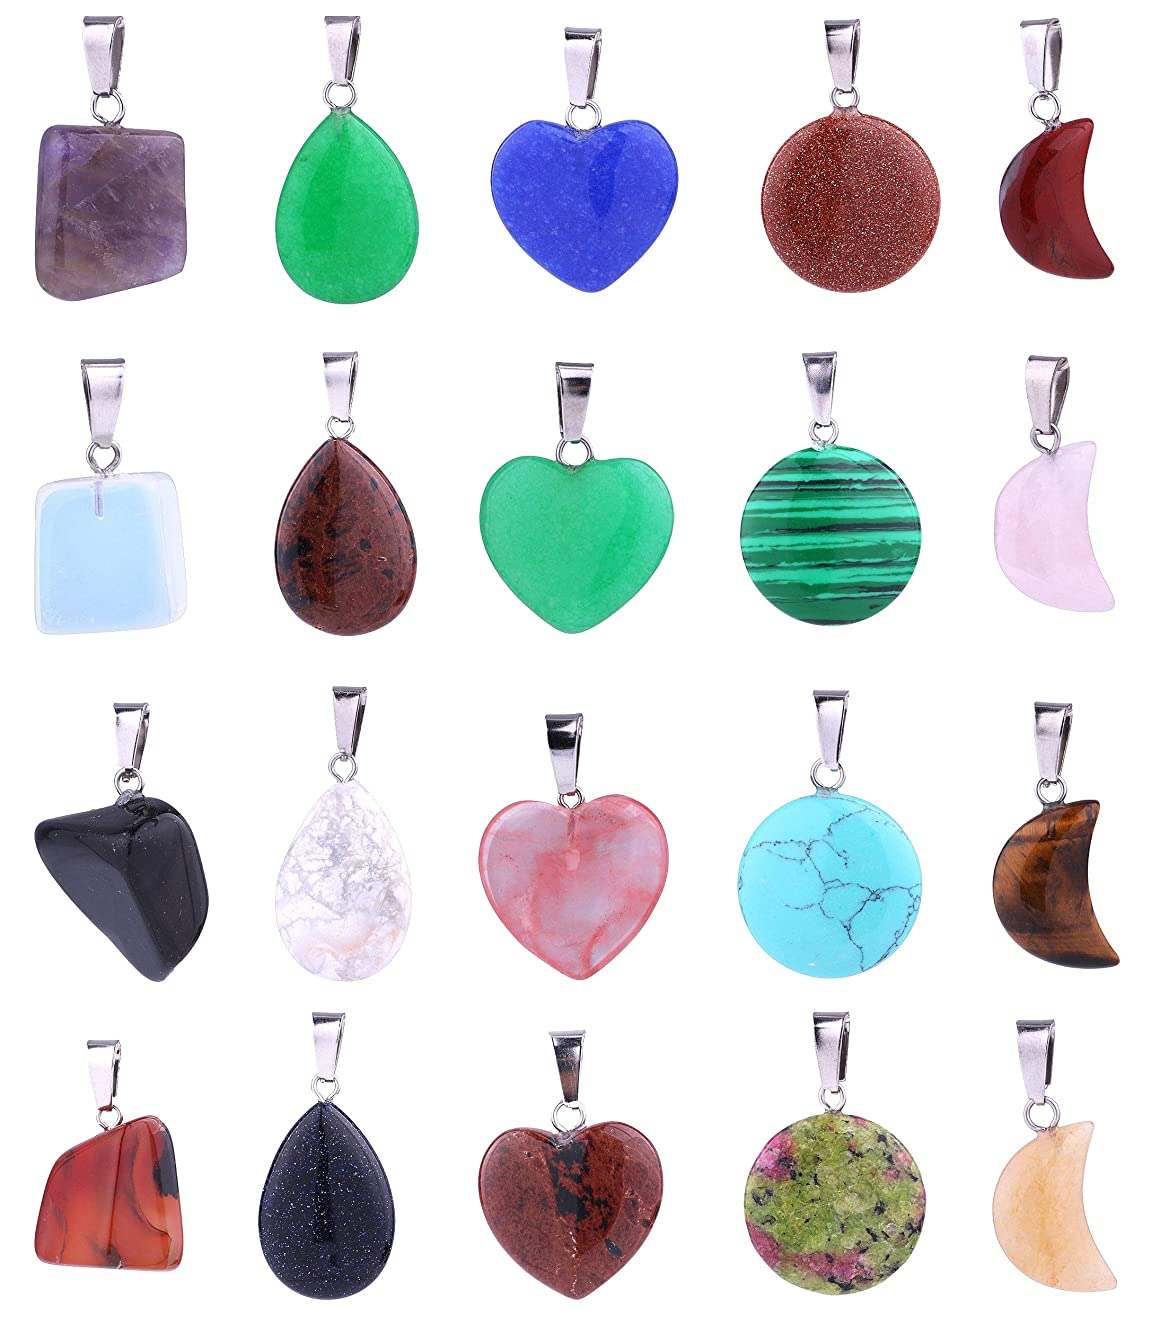 20pcs Mix Style Natural Stones Irregular Round Heart Moon Drop Healing Stone Pendants Charms Crystal Chakra Beads for DIY Necklace Jewelry Making, Assorted Color